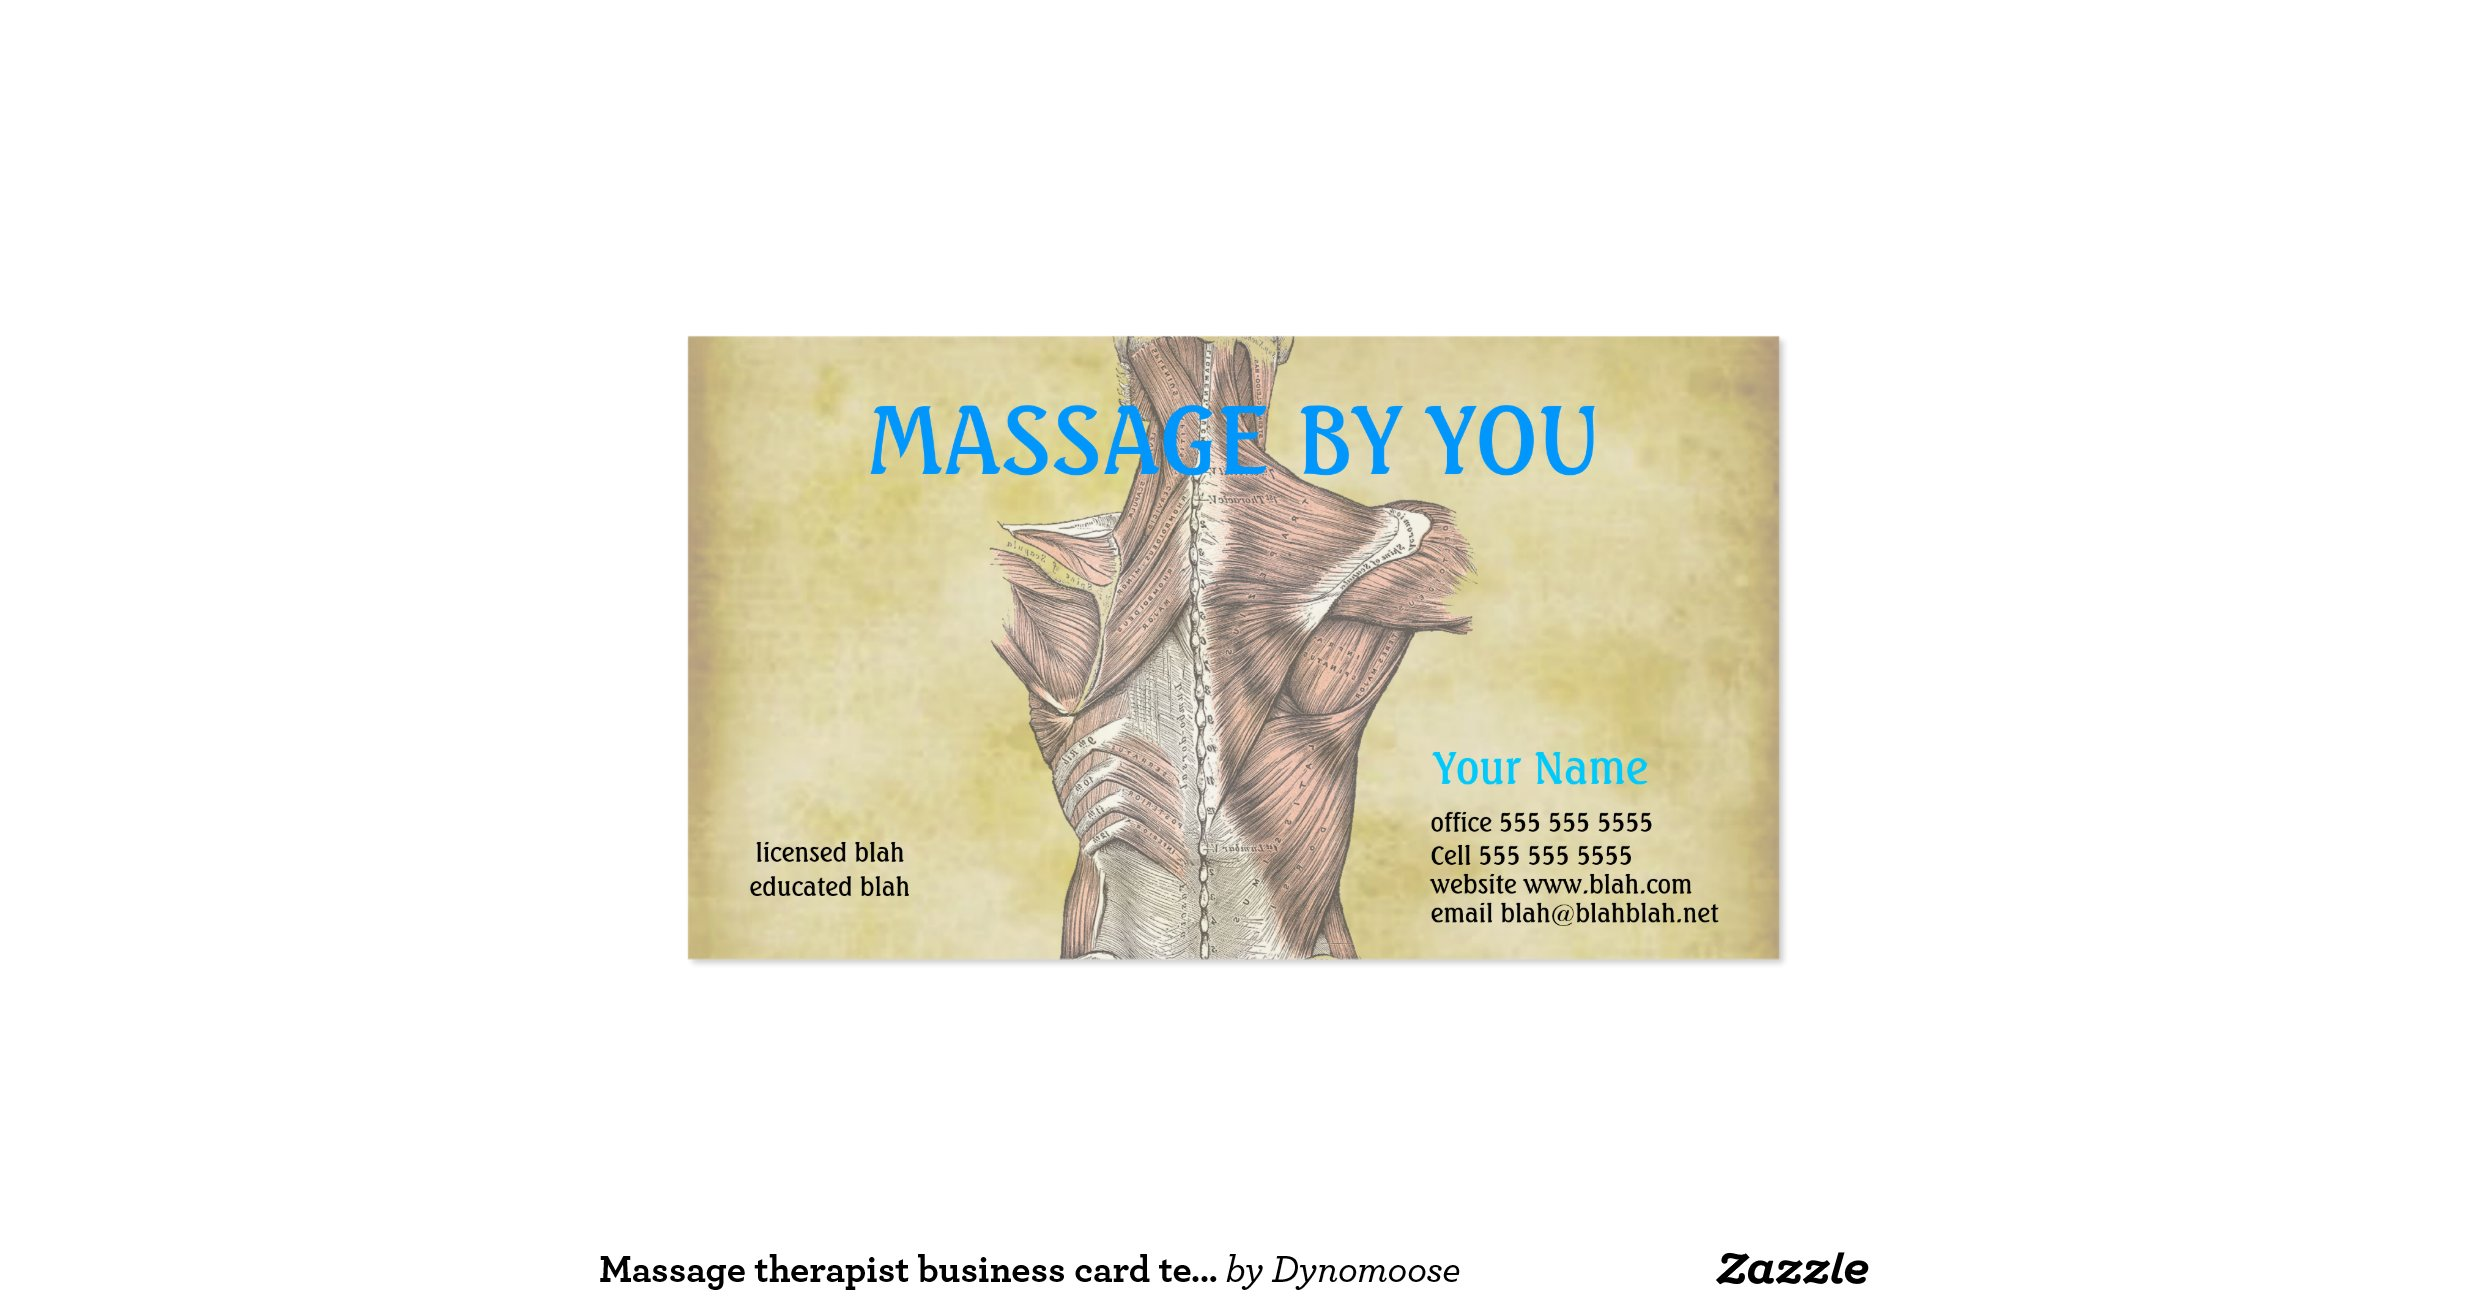 Massage_therapist_business_card_template-rd198241f188c4184847fac141a6c6969_i579t_8byvr_1200.jpg